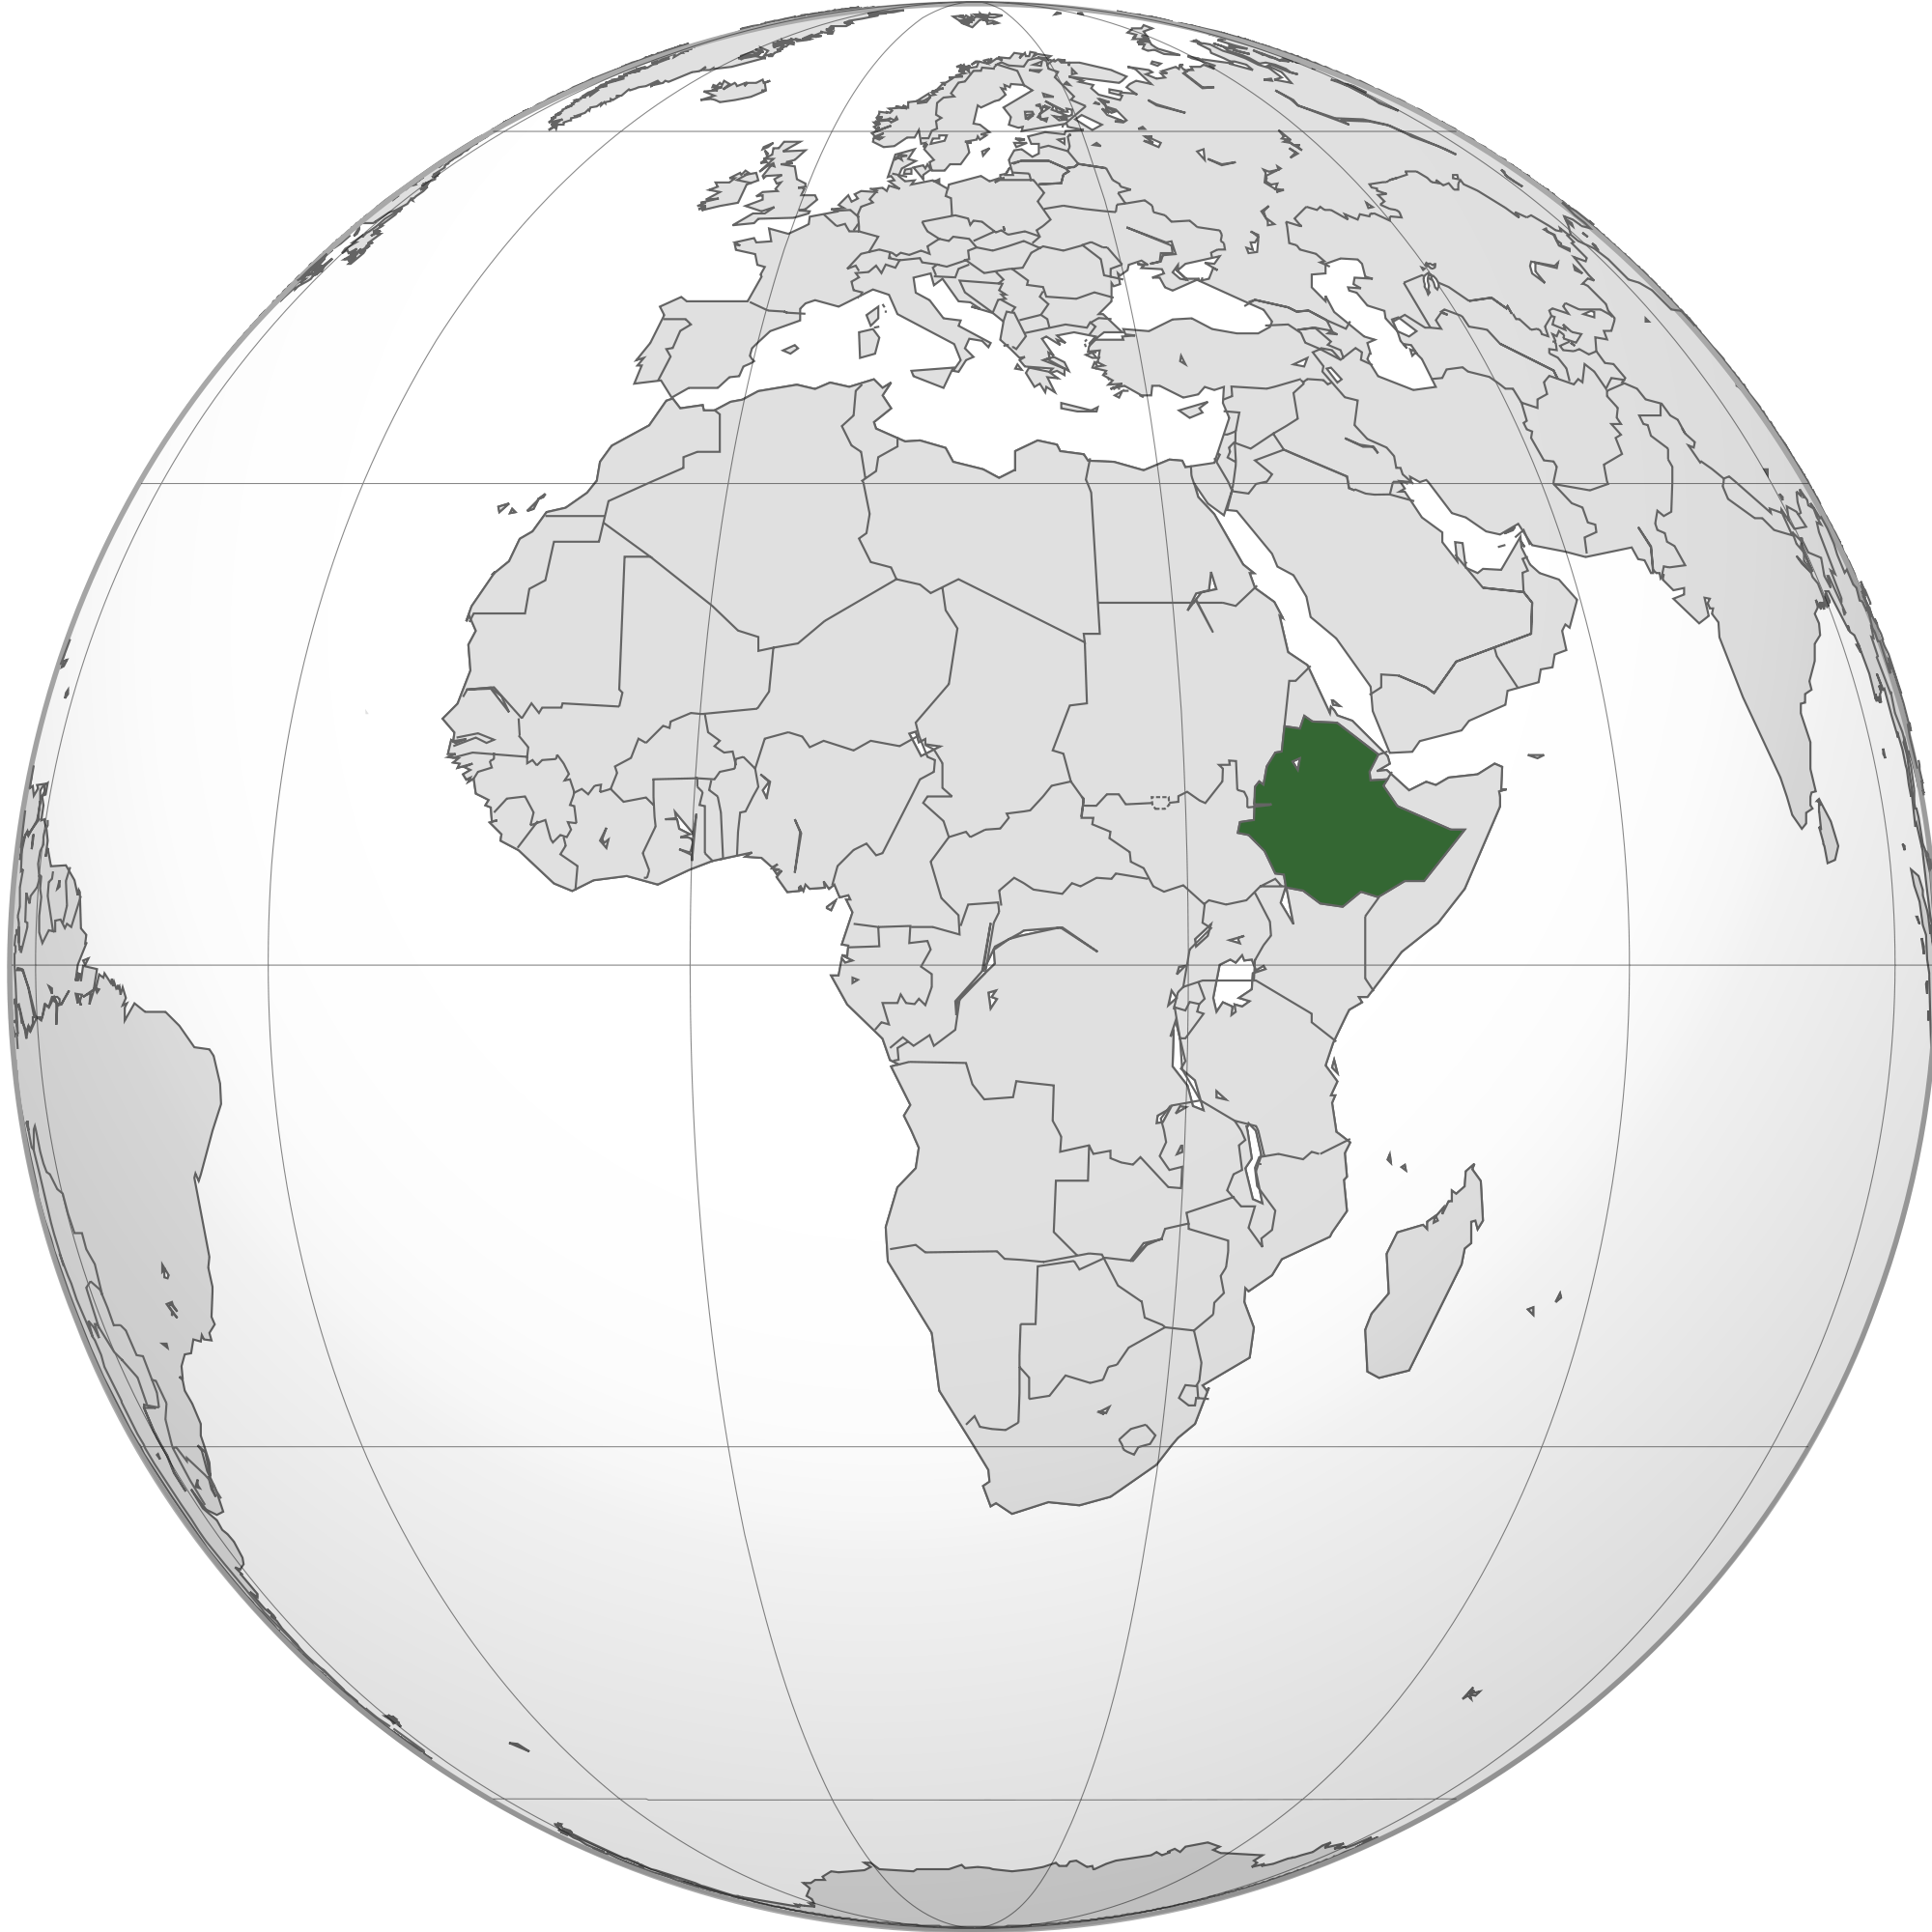 Location of the Ethiopia in the World Map